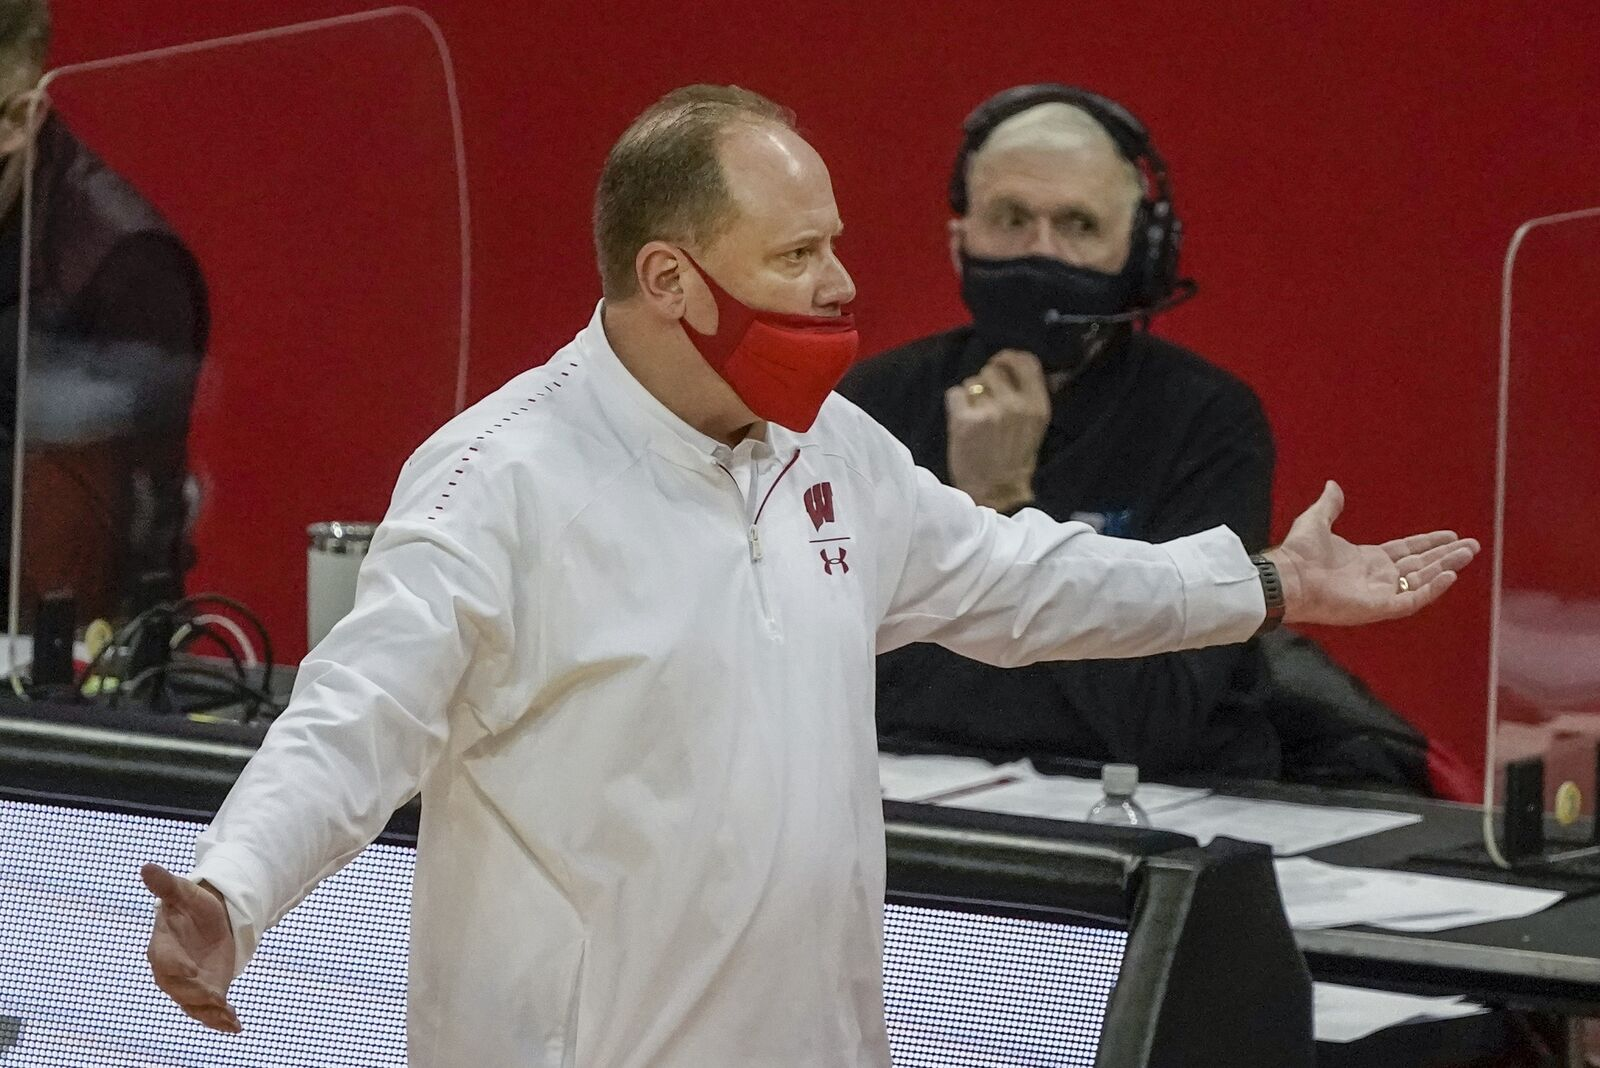 Wisconsin head coach Greg Gard reacts during the second half of an NCAA college basketball game against Northwestern Wednesday, Jan. 20, 2021, in Madison, Wis. (AP Photo/Morry Gash)